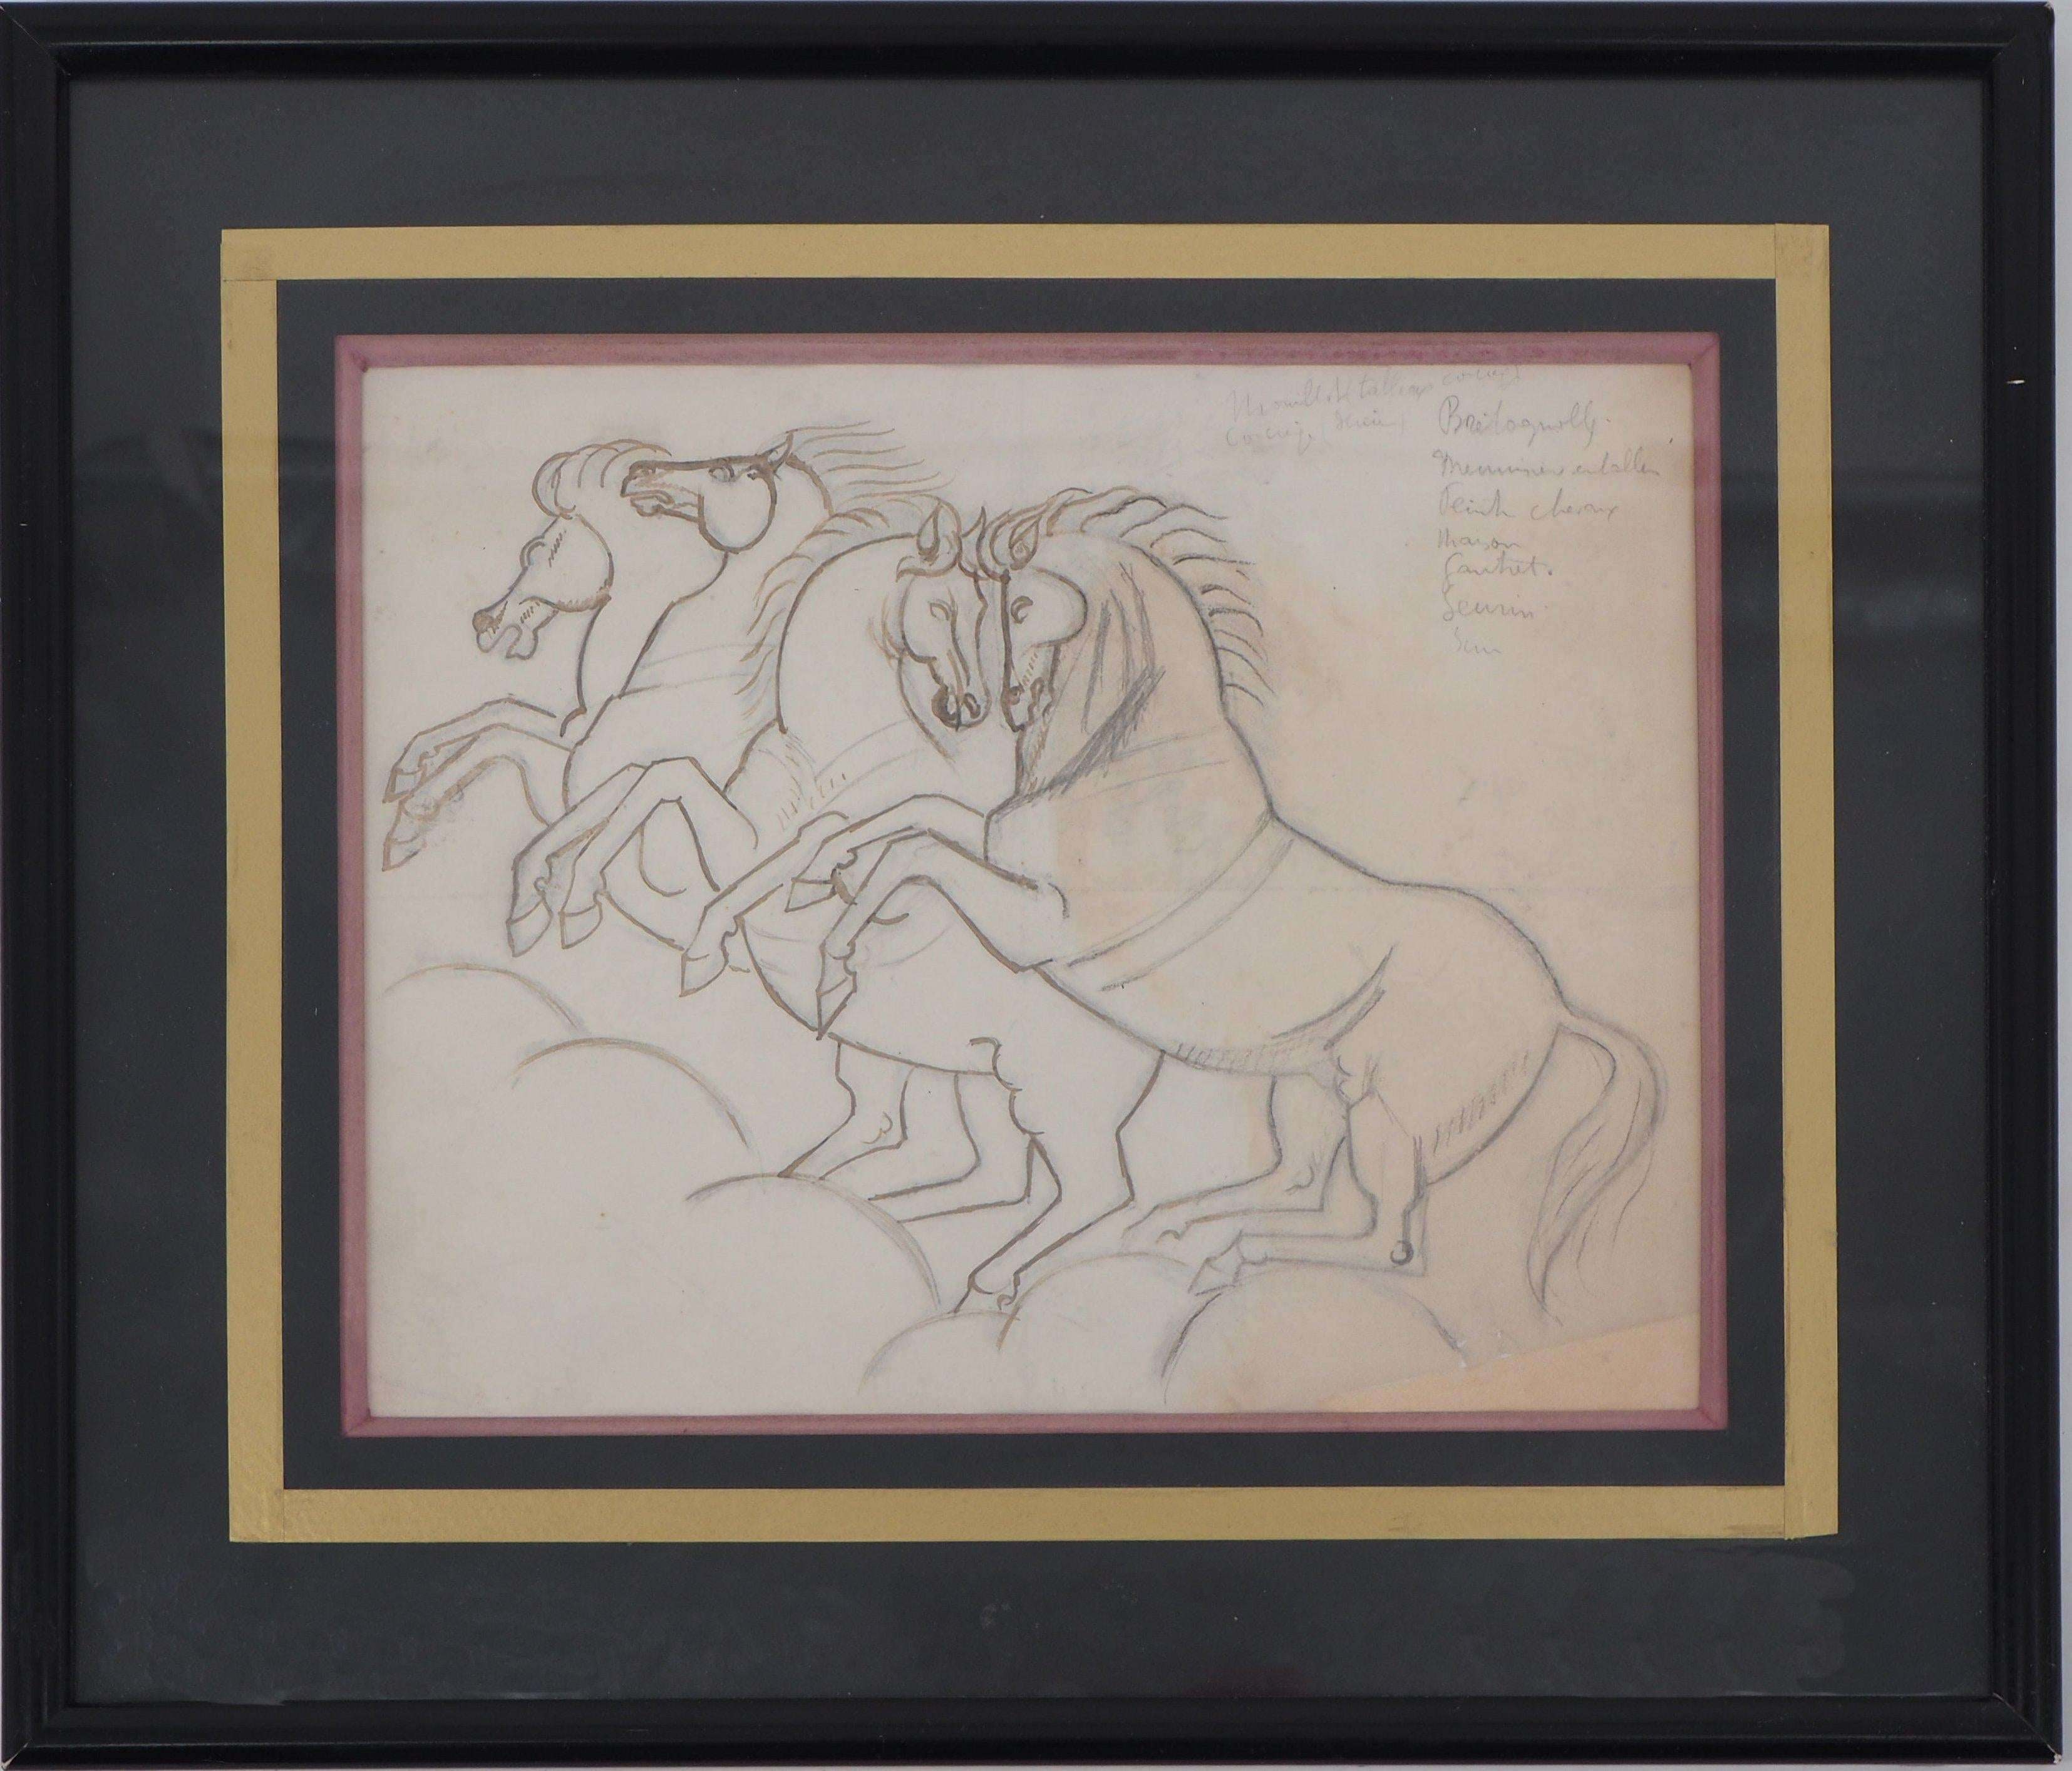 Two Couple of Horses - Original ink and pencil drawing